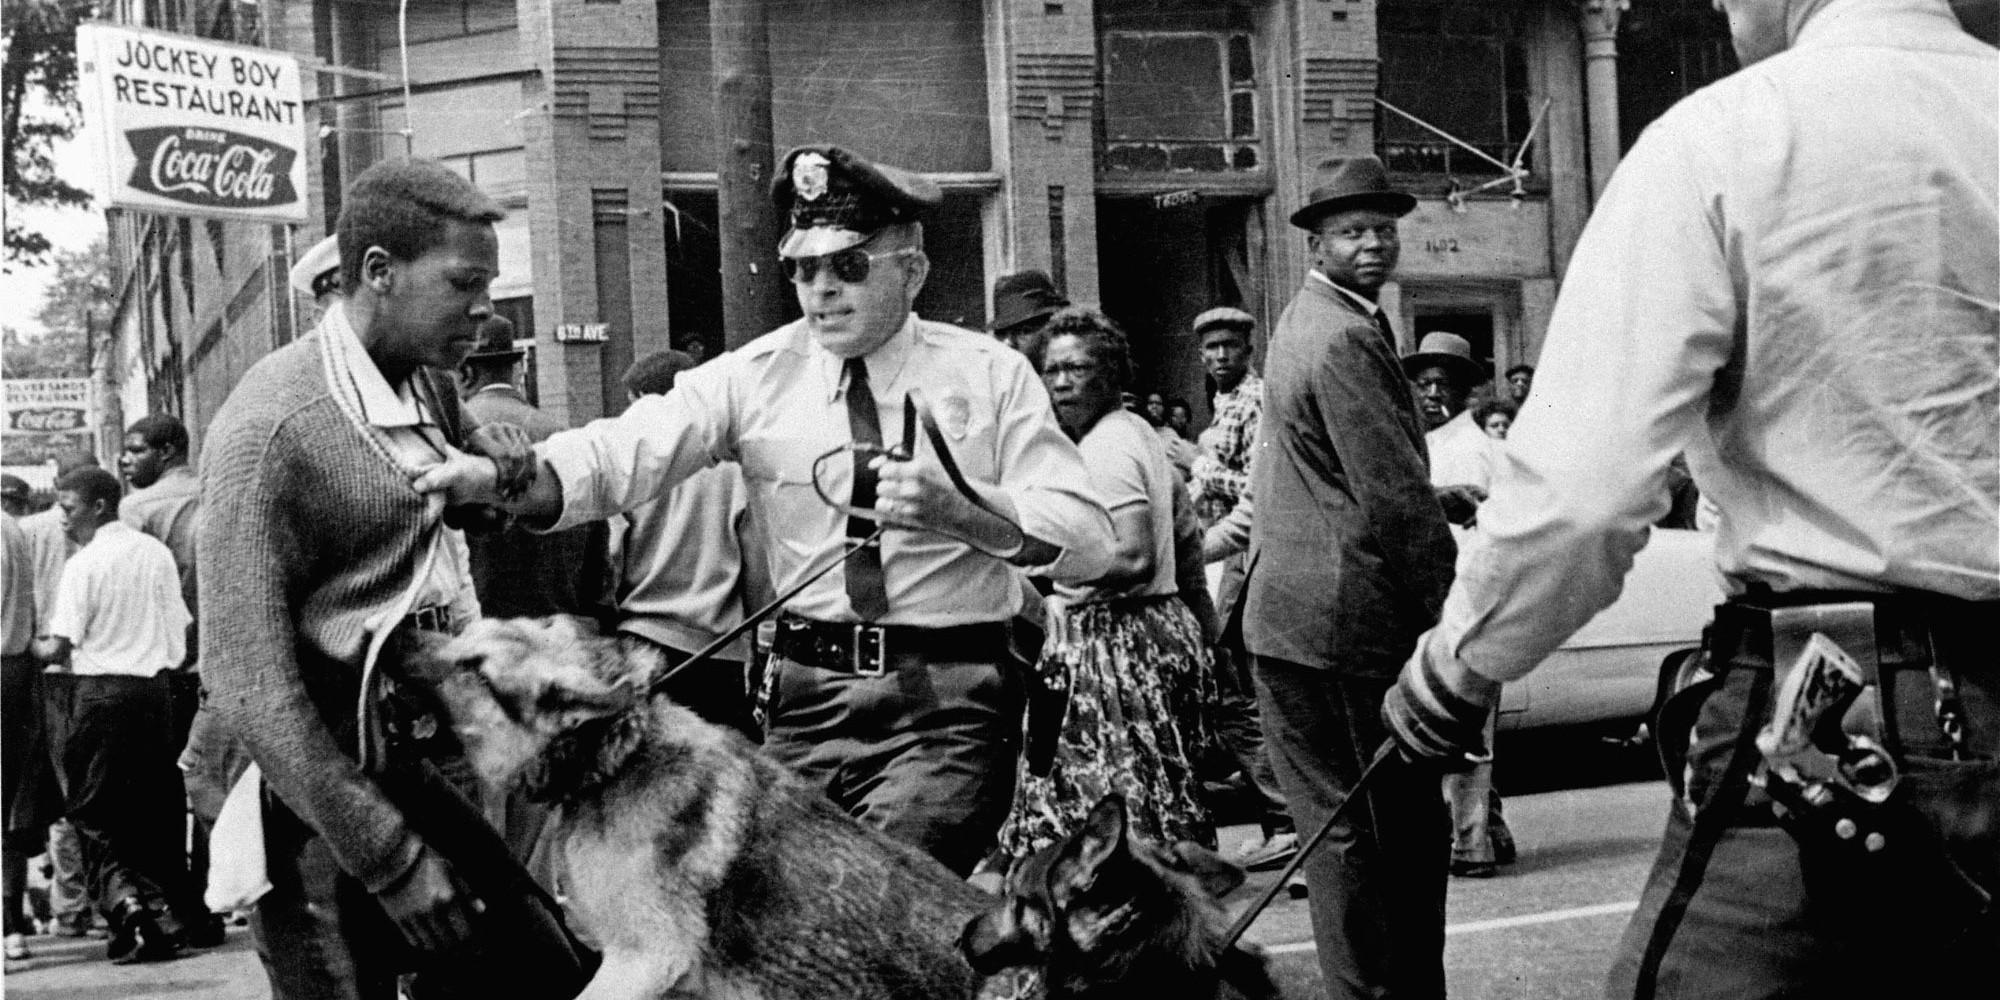 the causes of civil unrest in the united states during 1960s Which was not a cause of civil unrest in the united states in the 1960s a many americans didn't support the vietnam war b women were pai.